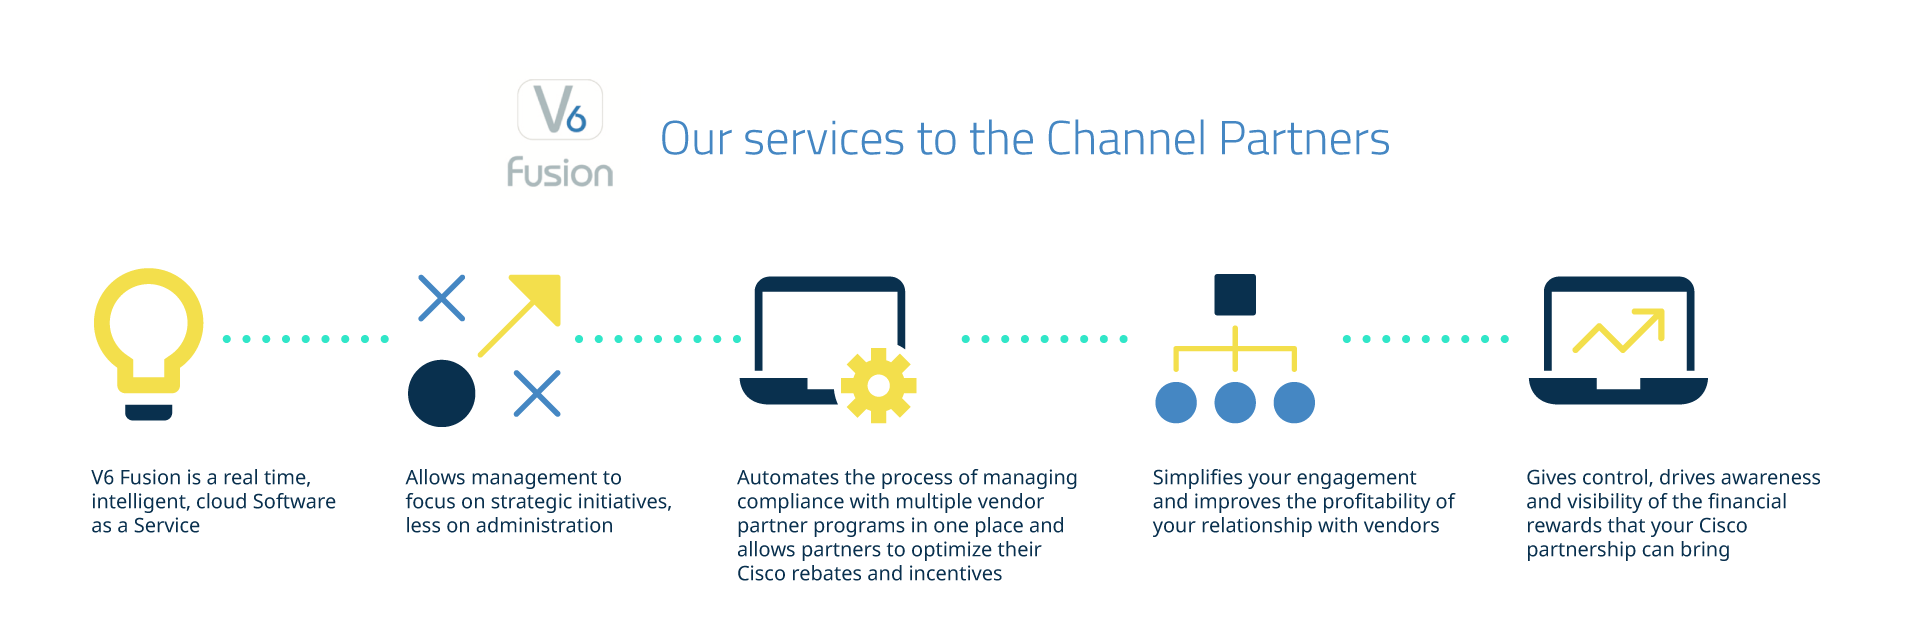 v6-fusion-at-a-glance, our services to the channel partners small icons with descriptions